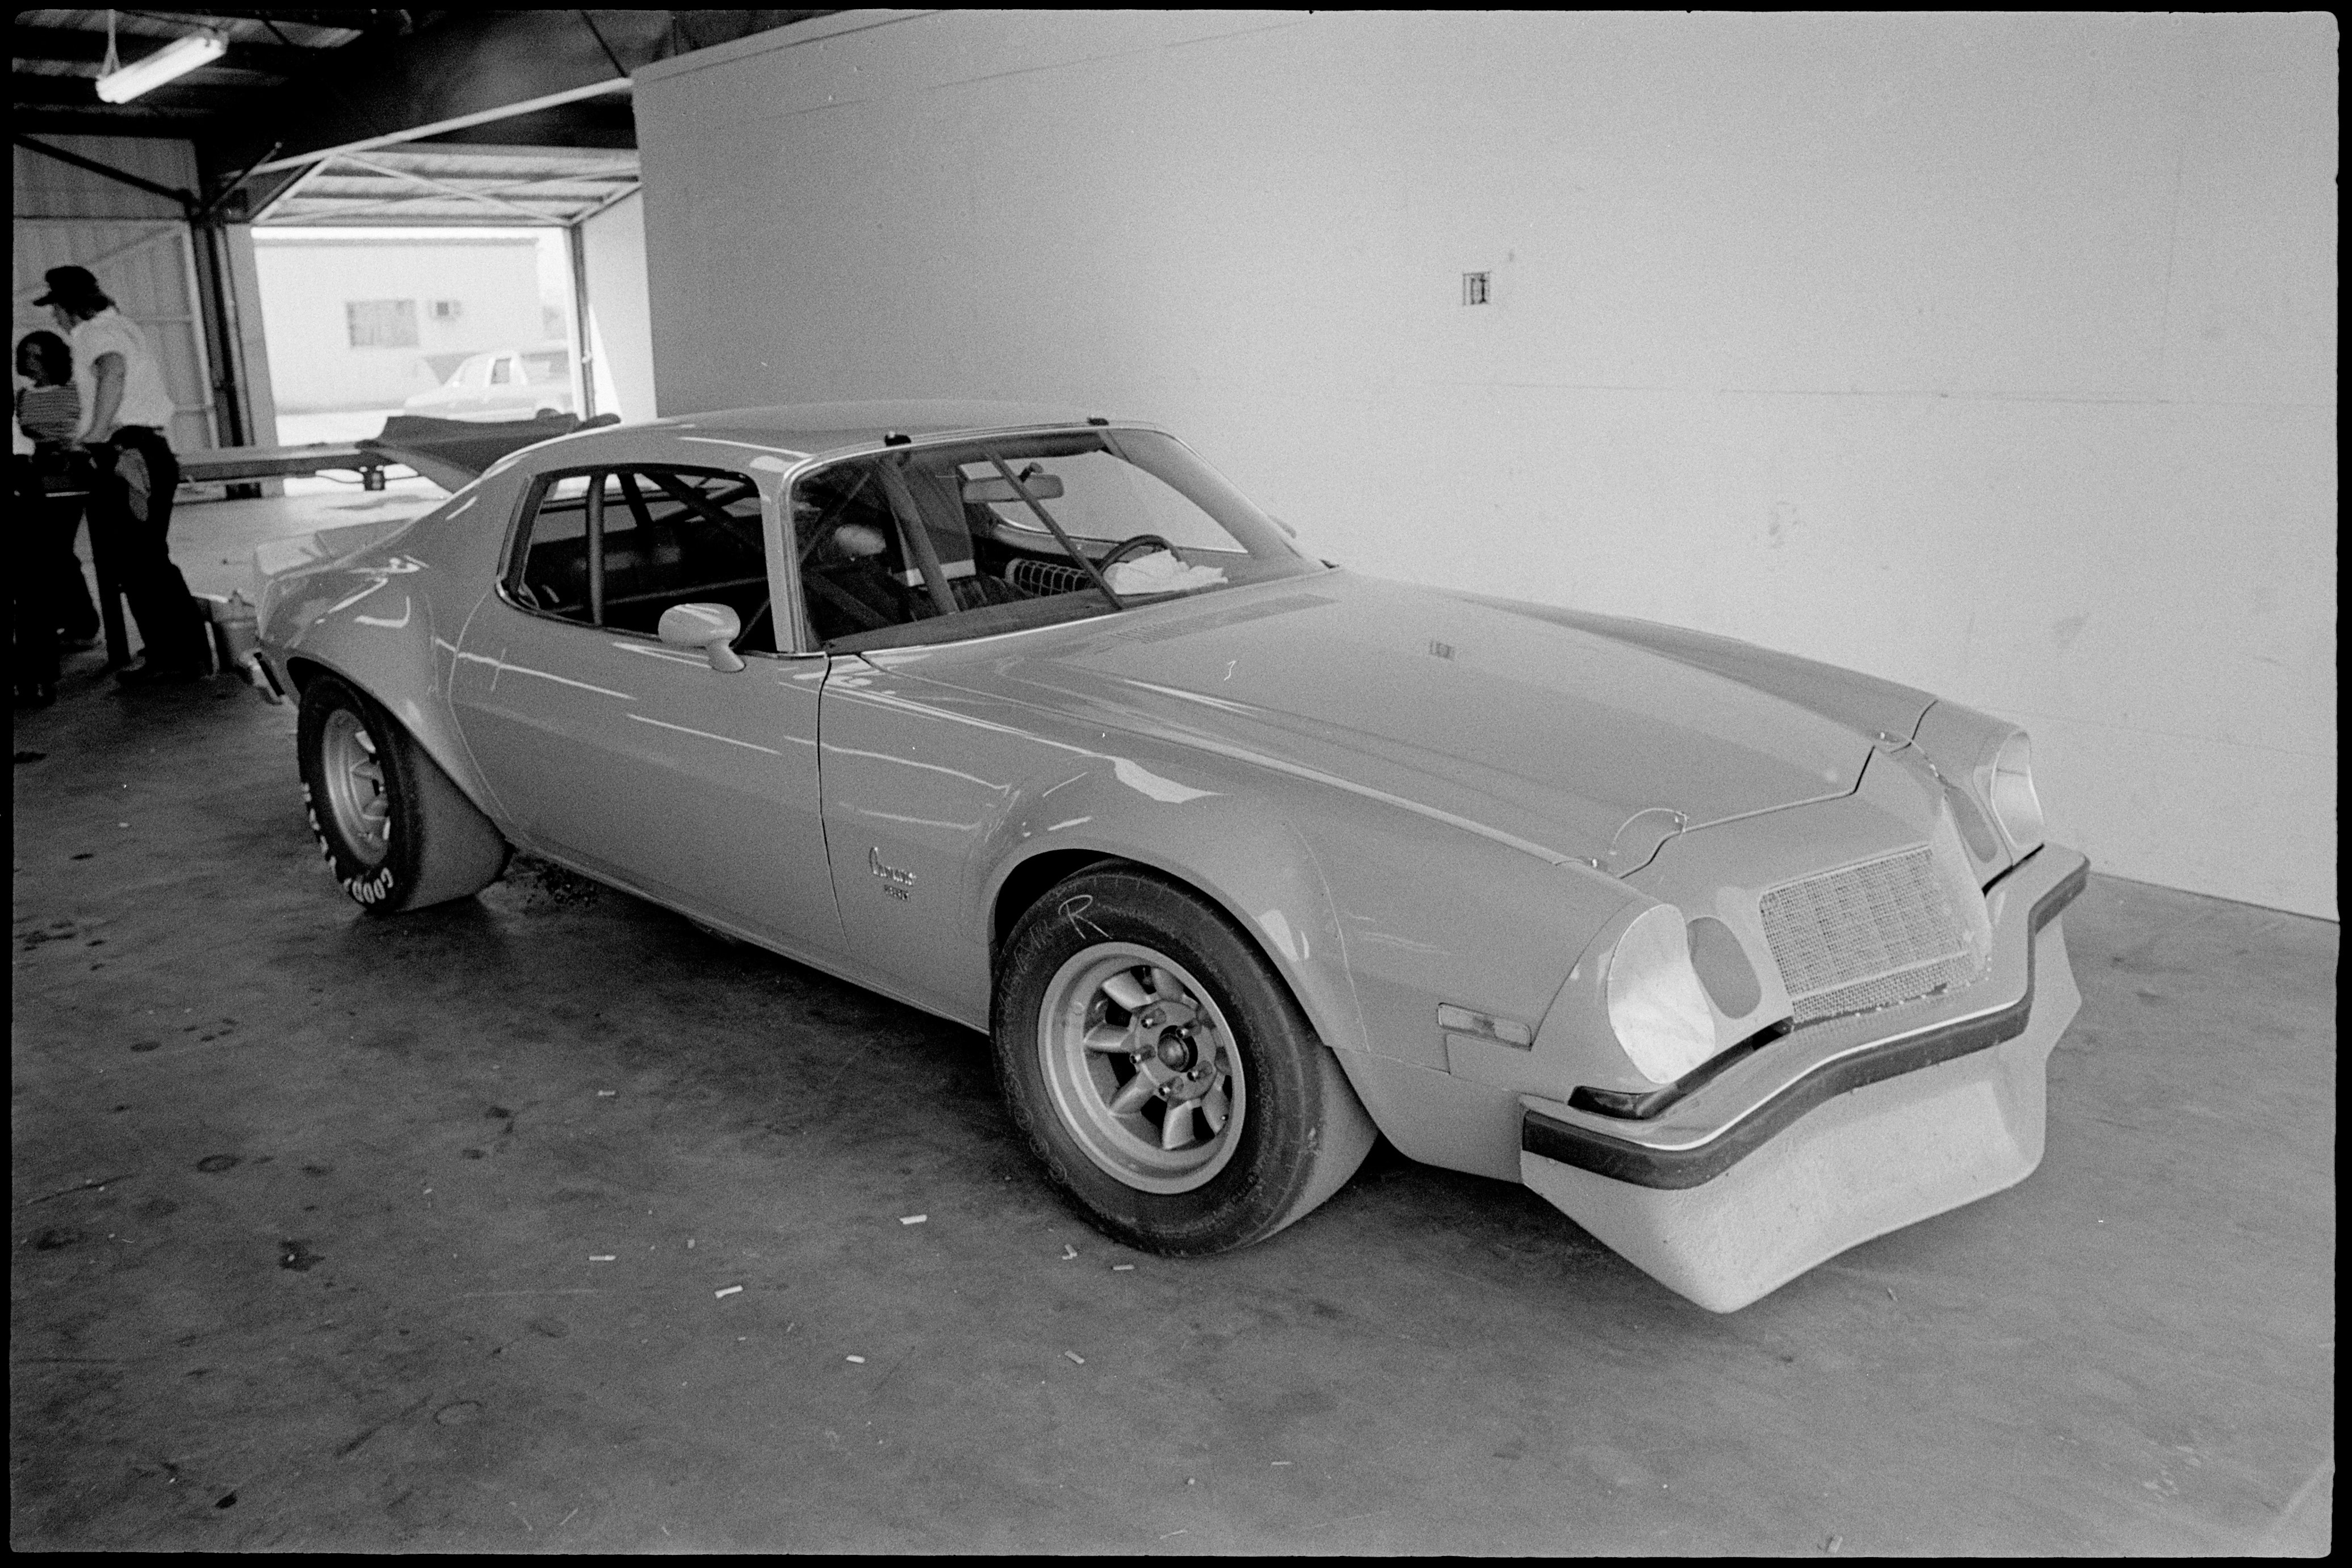 002 Archive Penske Iroc 1974 Chevrolet Camaro In Garage